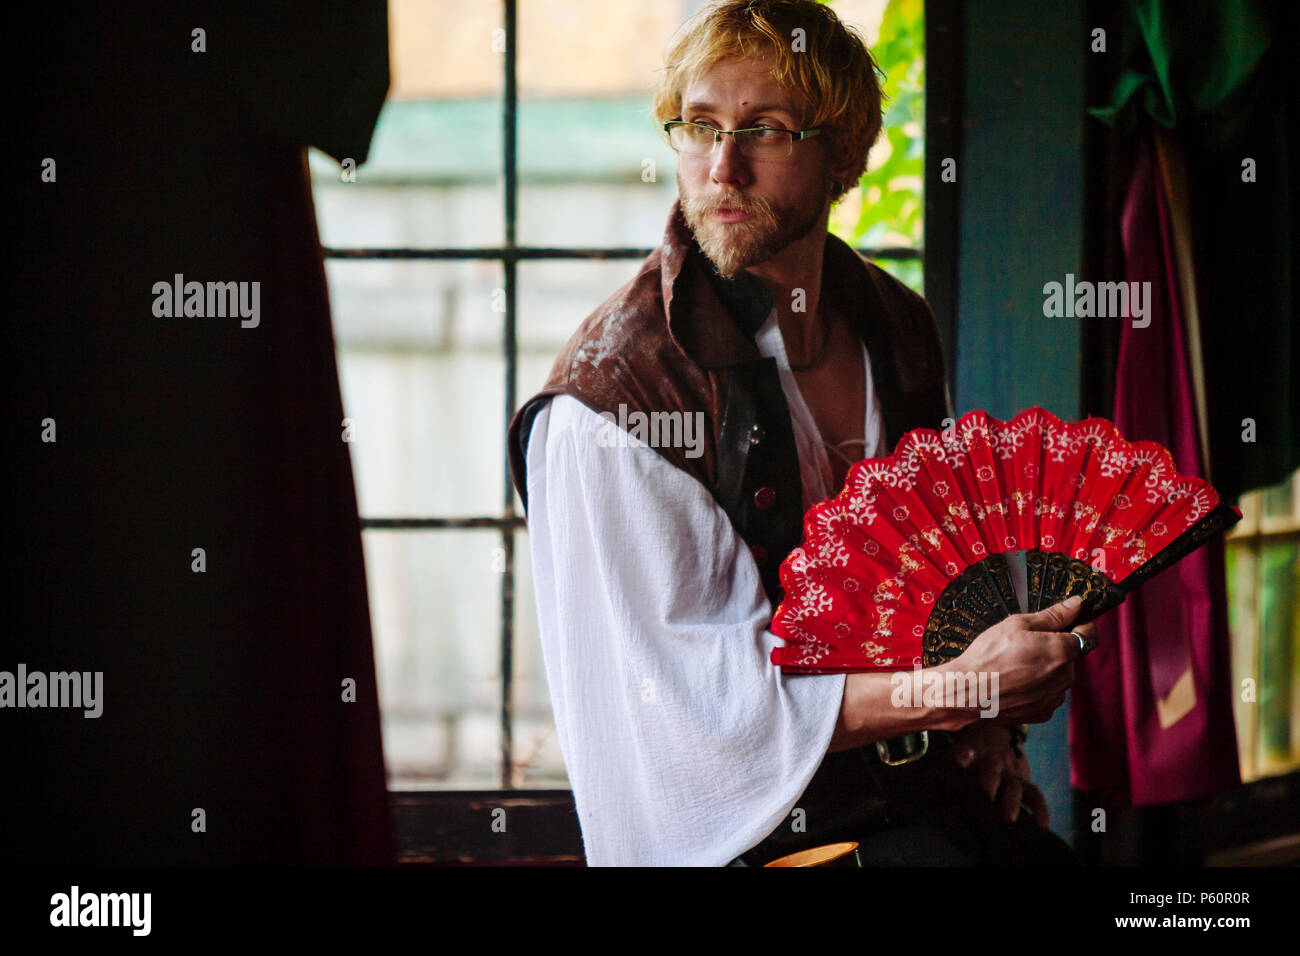 A Renaissance actor sits at a window with a red fan. - Stock Image